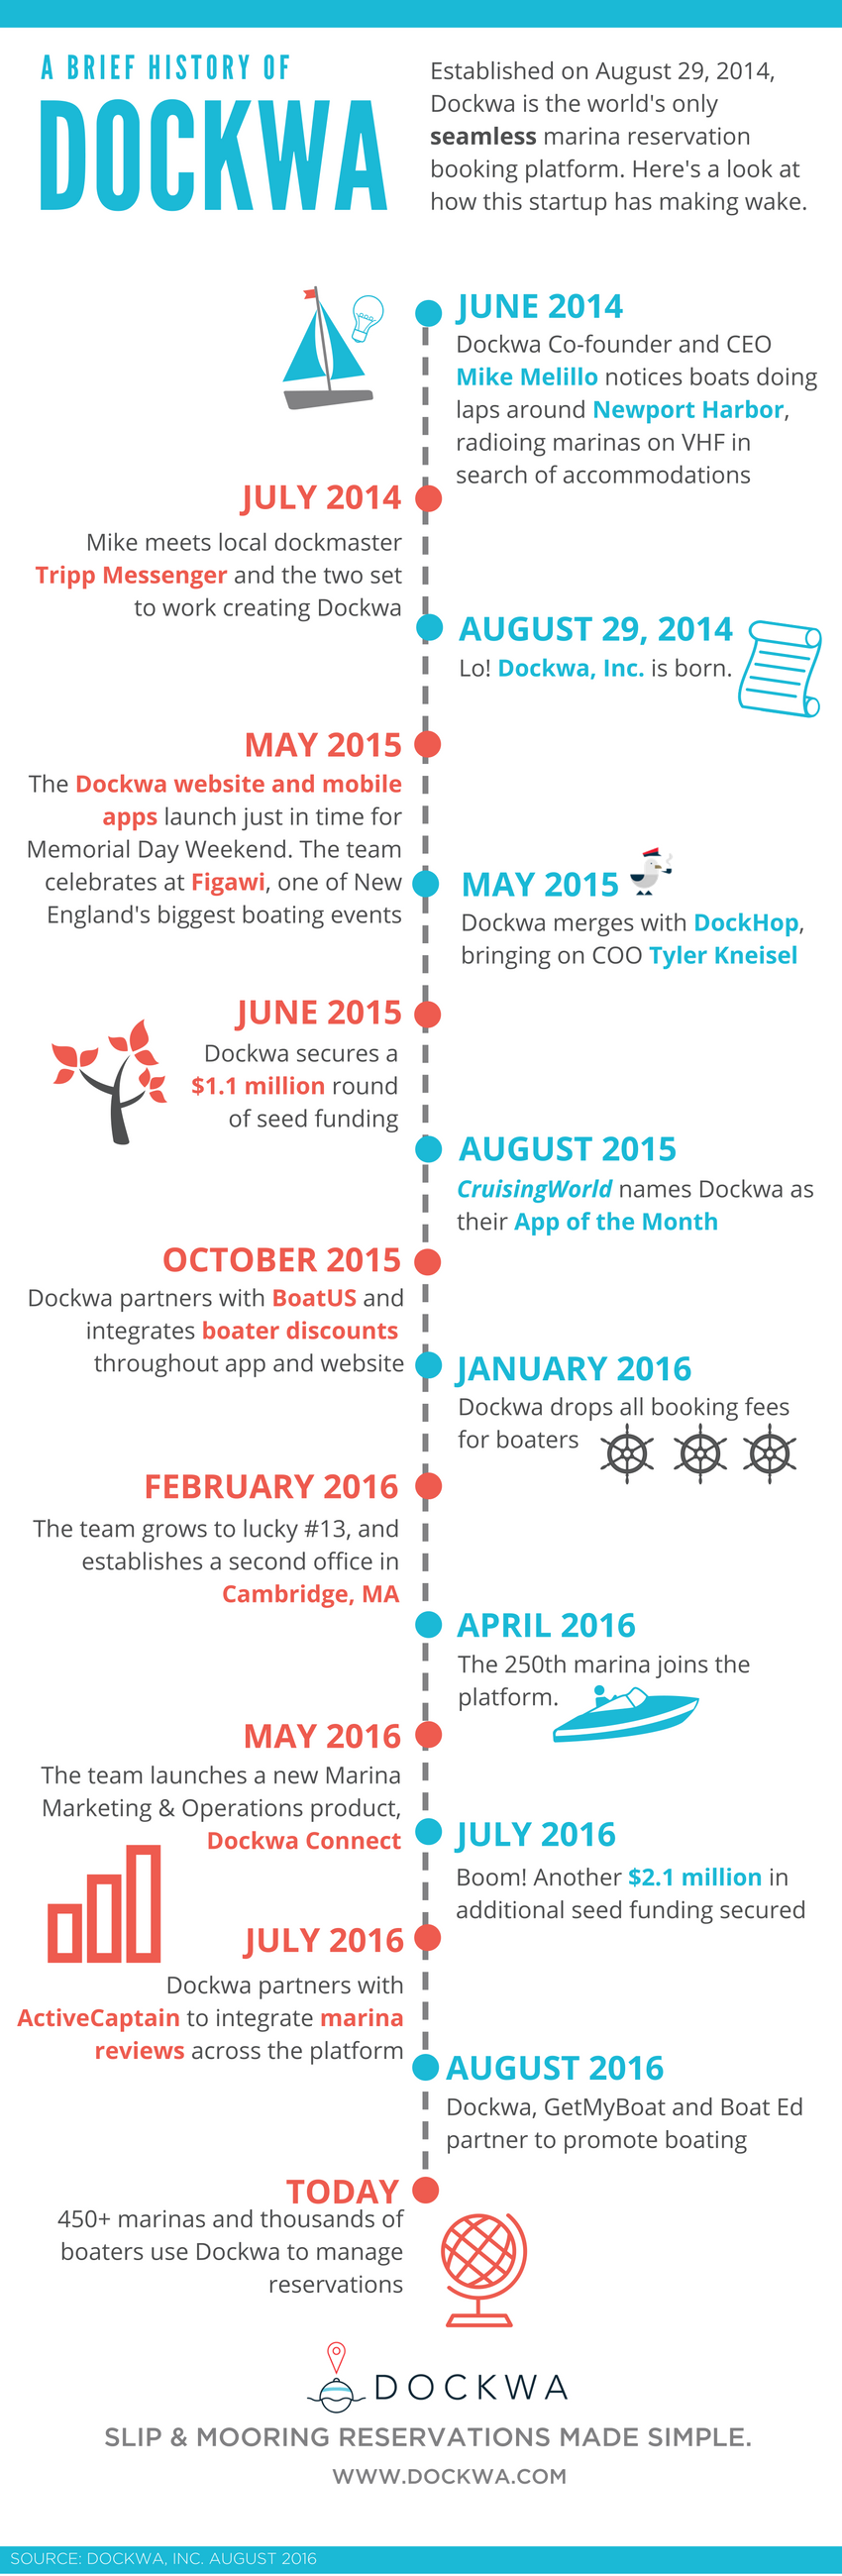 Dockwa_Birthday_82F292F2016_-_Infographic_1-_Timeline_4.png